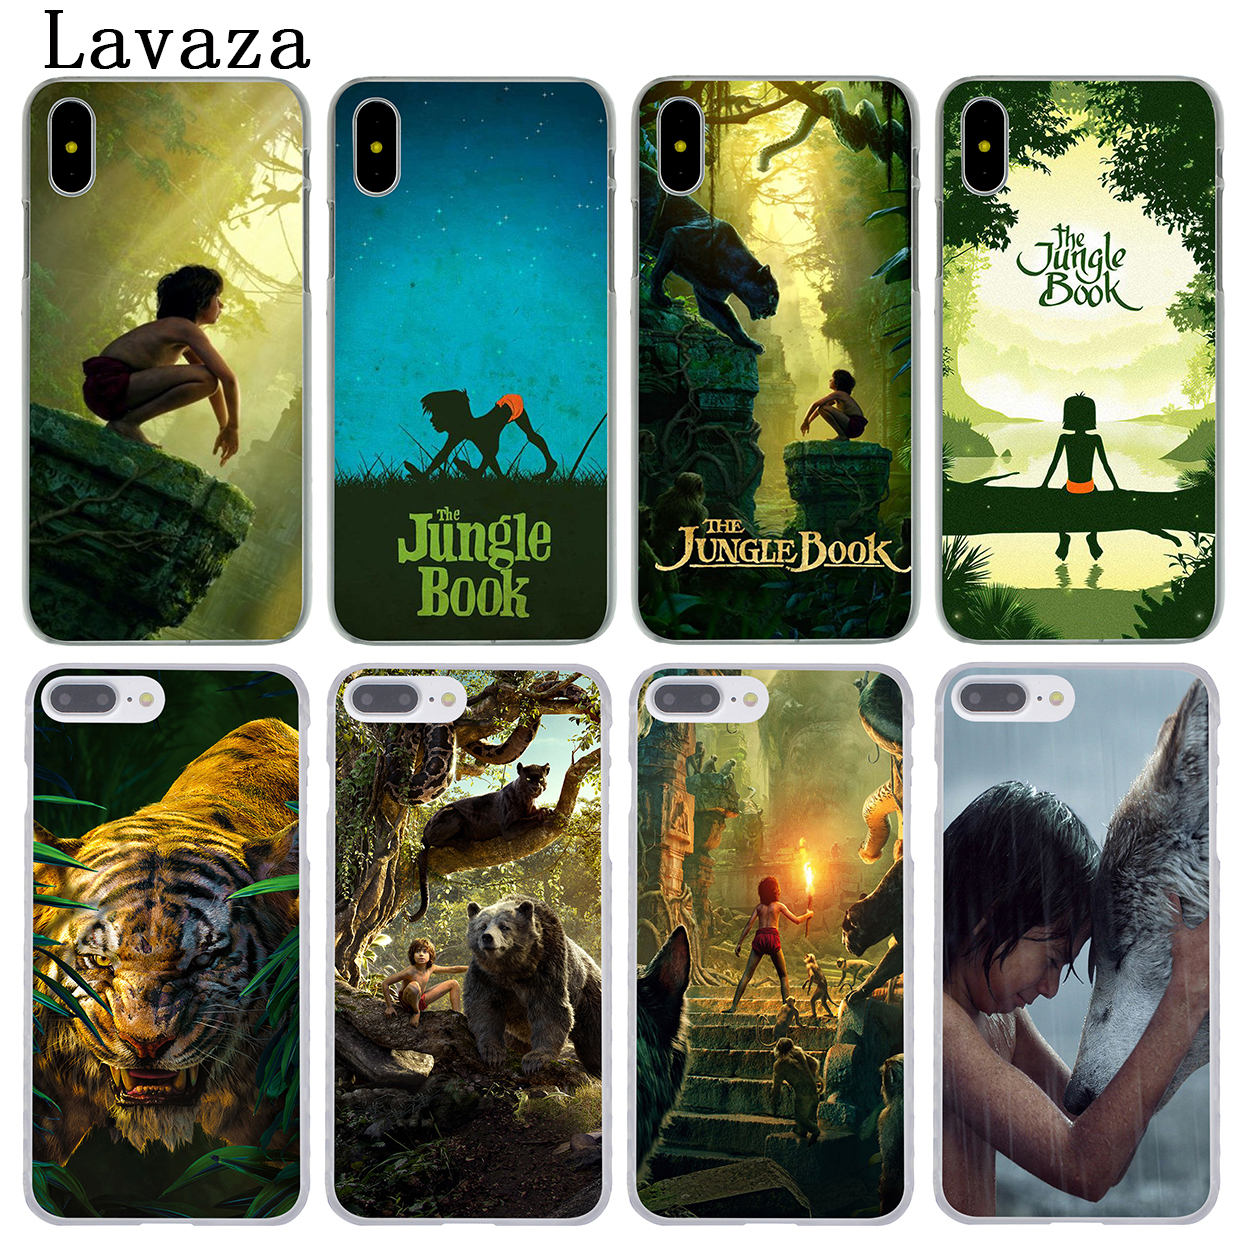 Lavaza The Jungle Book Hard Phone Coque Shell Case for Apple iPhone X 10 8 7 6 6S Plus 5 5S SE 5C 4 4S Cover